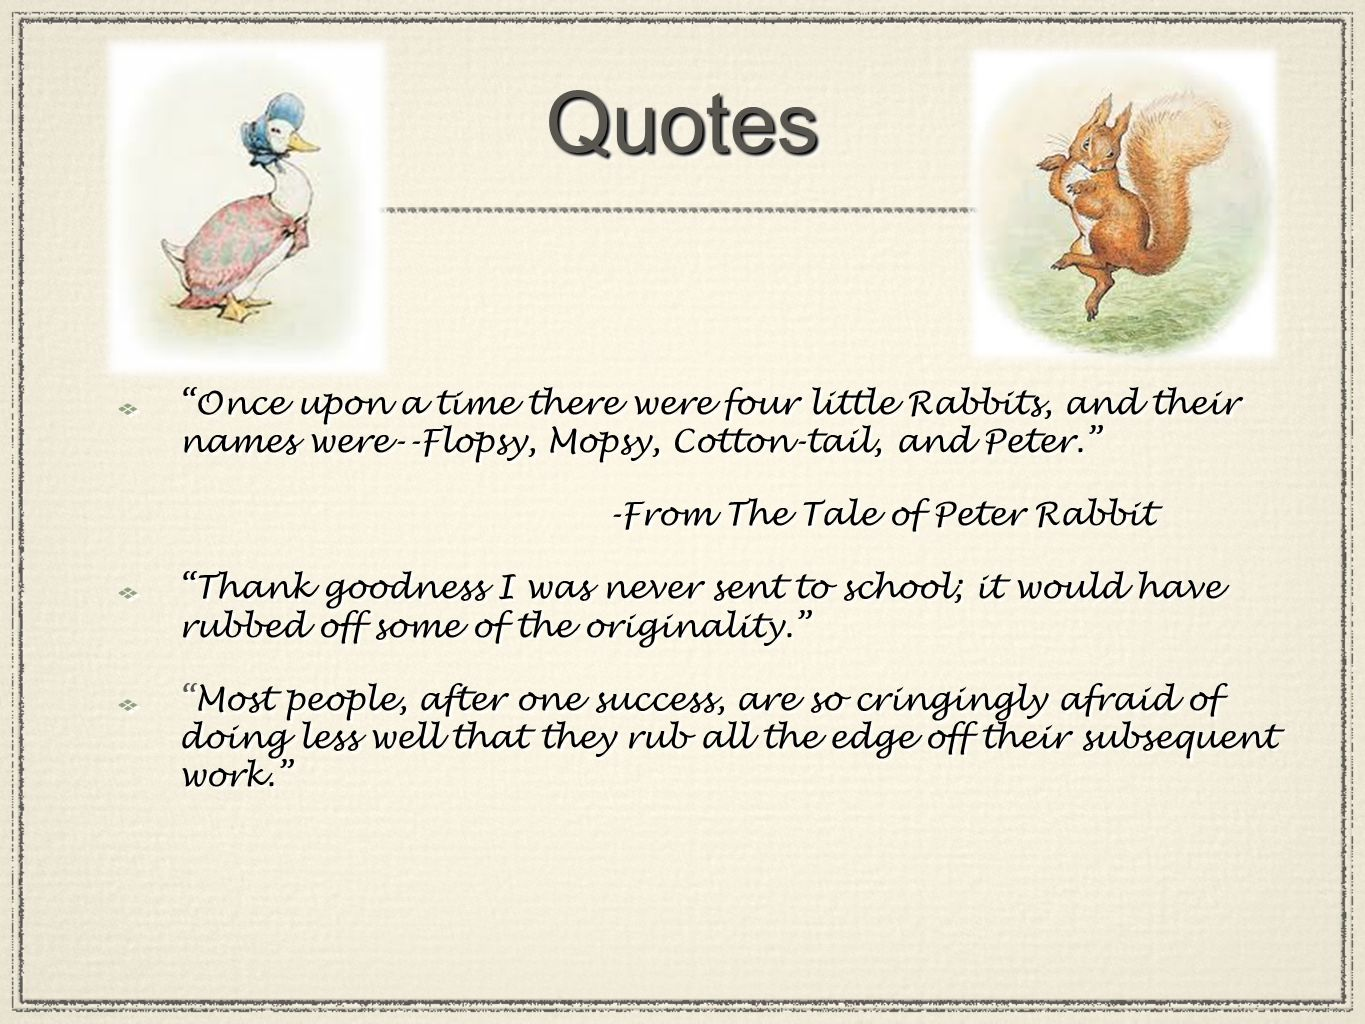 QuotesQuotes Once upon a time there were four little Rabbits, and their names were--Flopsy, Mopsy, Cotton-tail, and Peter. -From The Tale of Peter Rabbit Thank goodness I was never sent to school; it would have rubbed off some of the originality. Most people, after one success, are so cringingly afraid of doing less well that they rub all the edge off their subsequent work. Once upon a time there were four little Rabbits, and their names were--Flopsy, Mopsy, Cotton-tail, and Peter. -From The Tale of Peter Rabbit Thank goodness I was never sent to school; it would have rubbed off some of the originality. Most people, after one success, are so cringingly afraid of doing less well that they rub all the edge off their subsequent work.